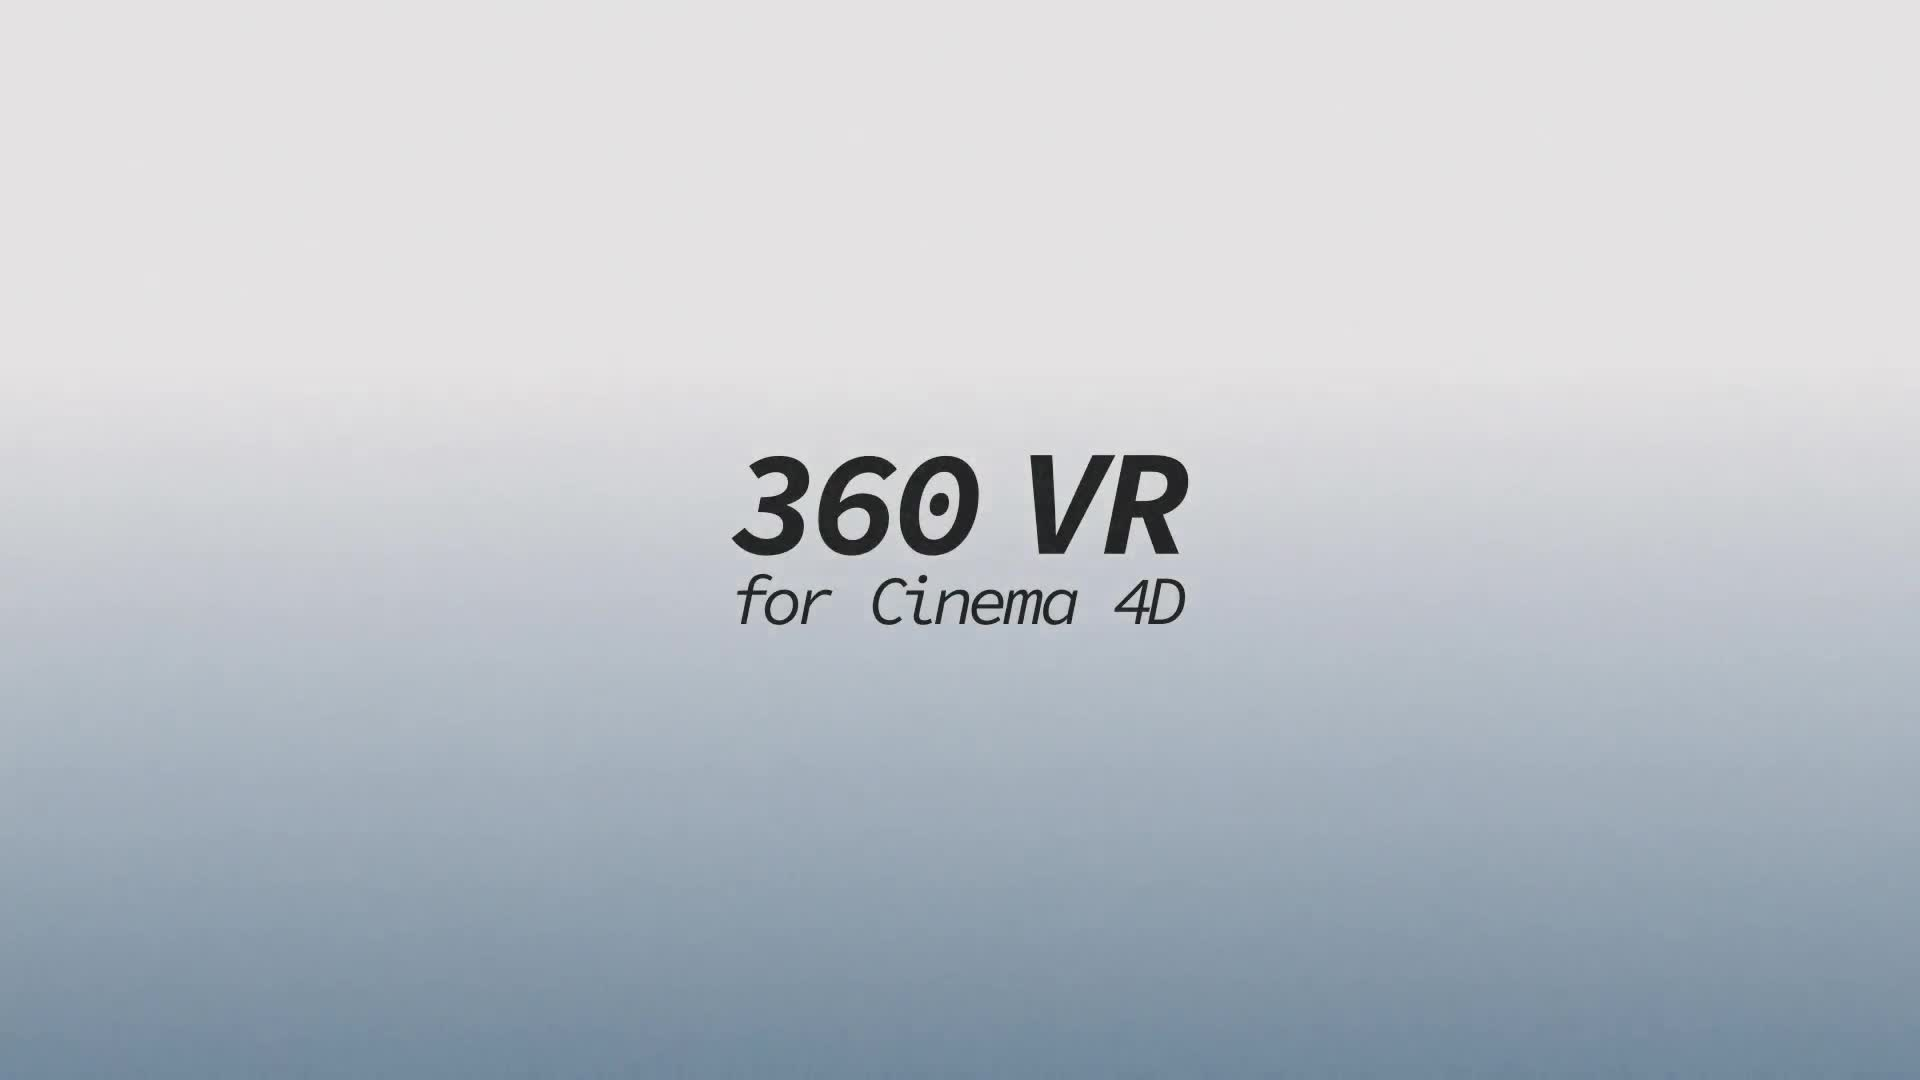 360 VR for Cinema 4D - Download Videohive 18332676